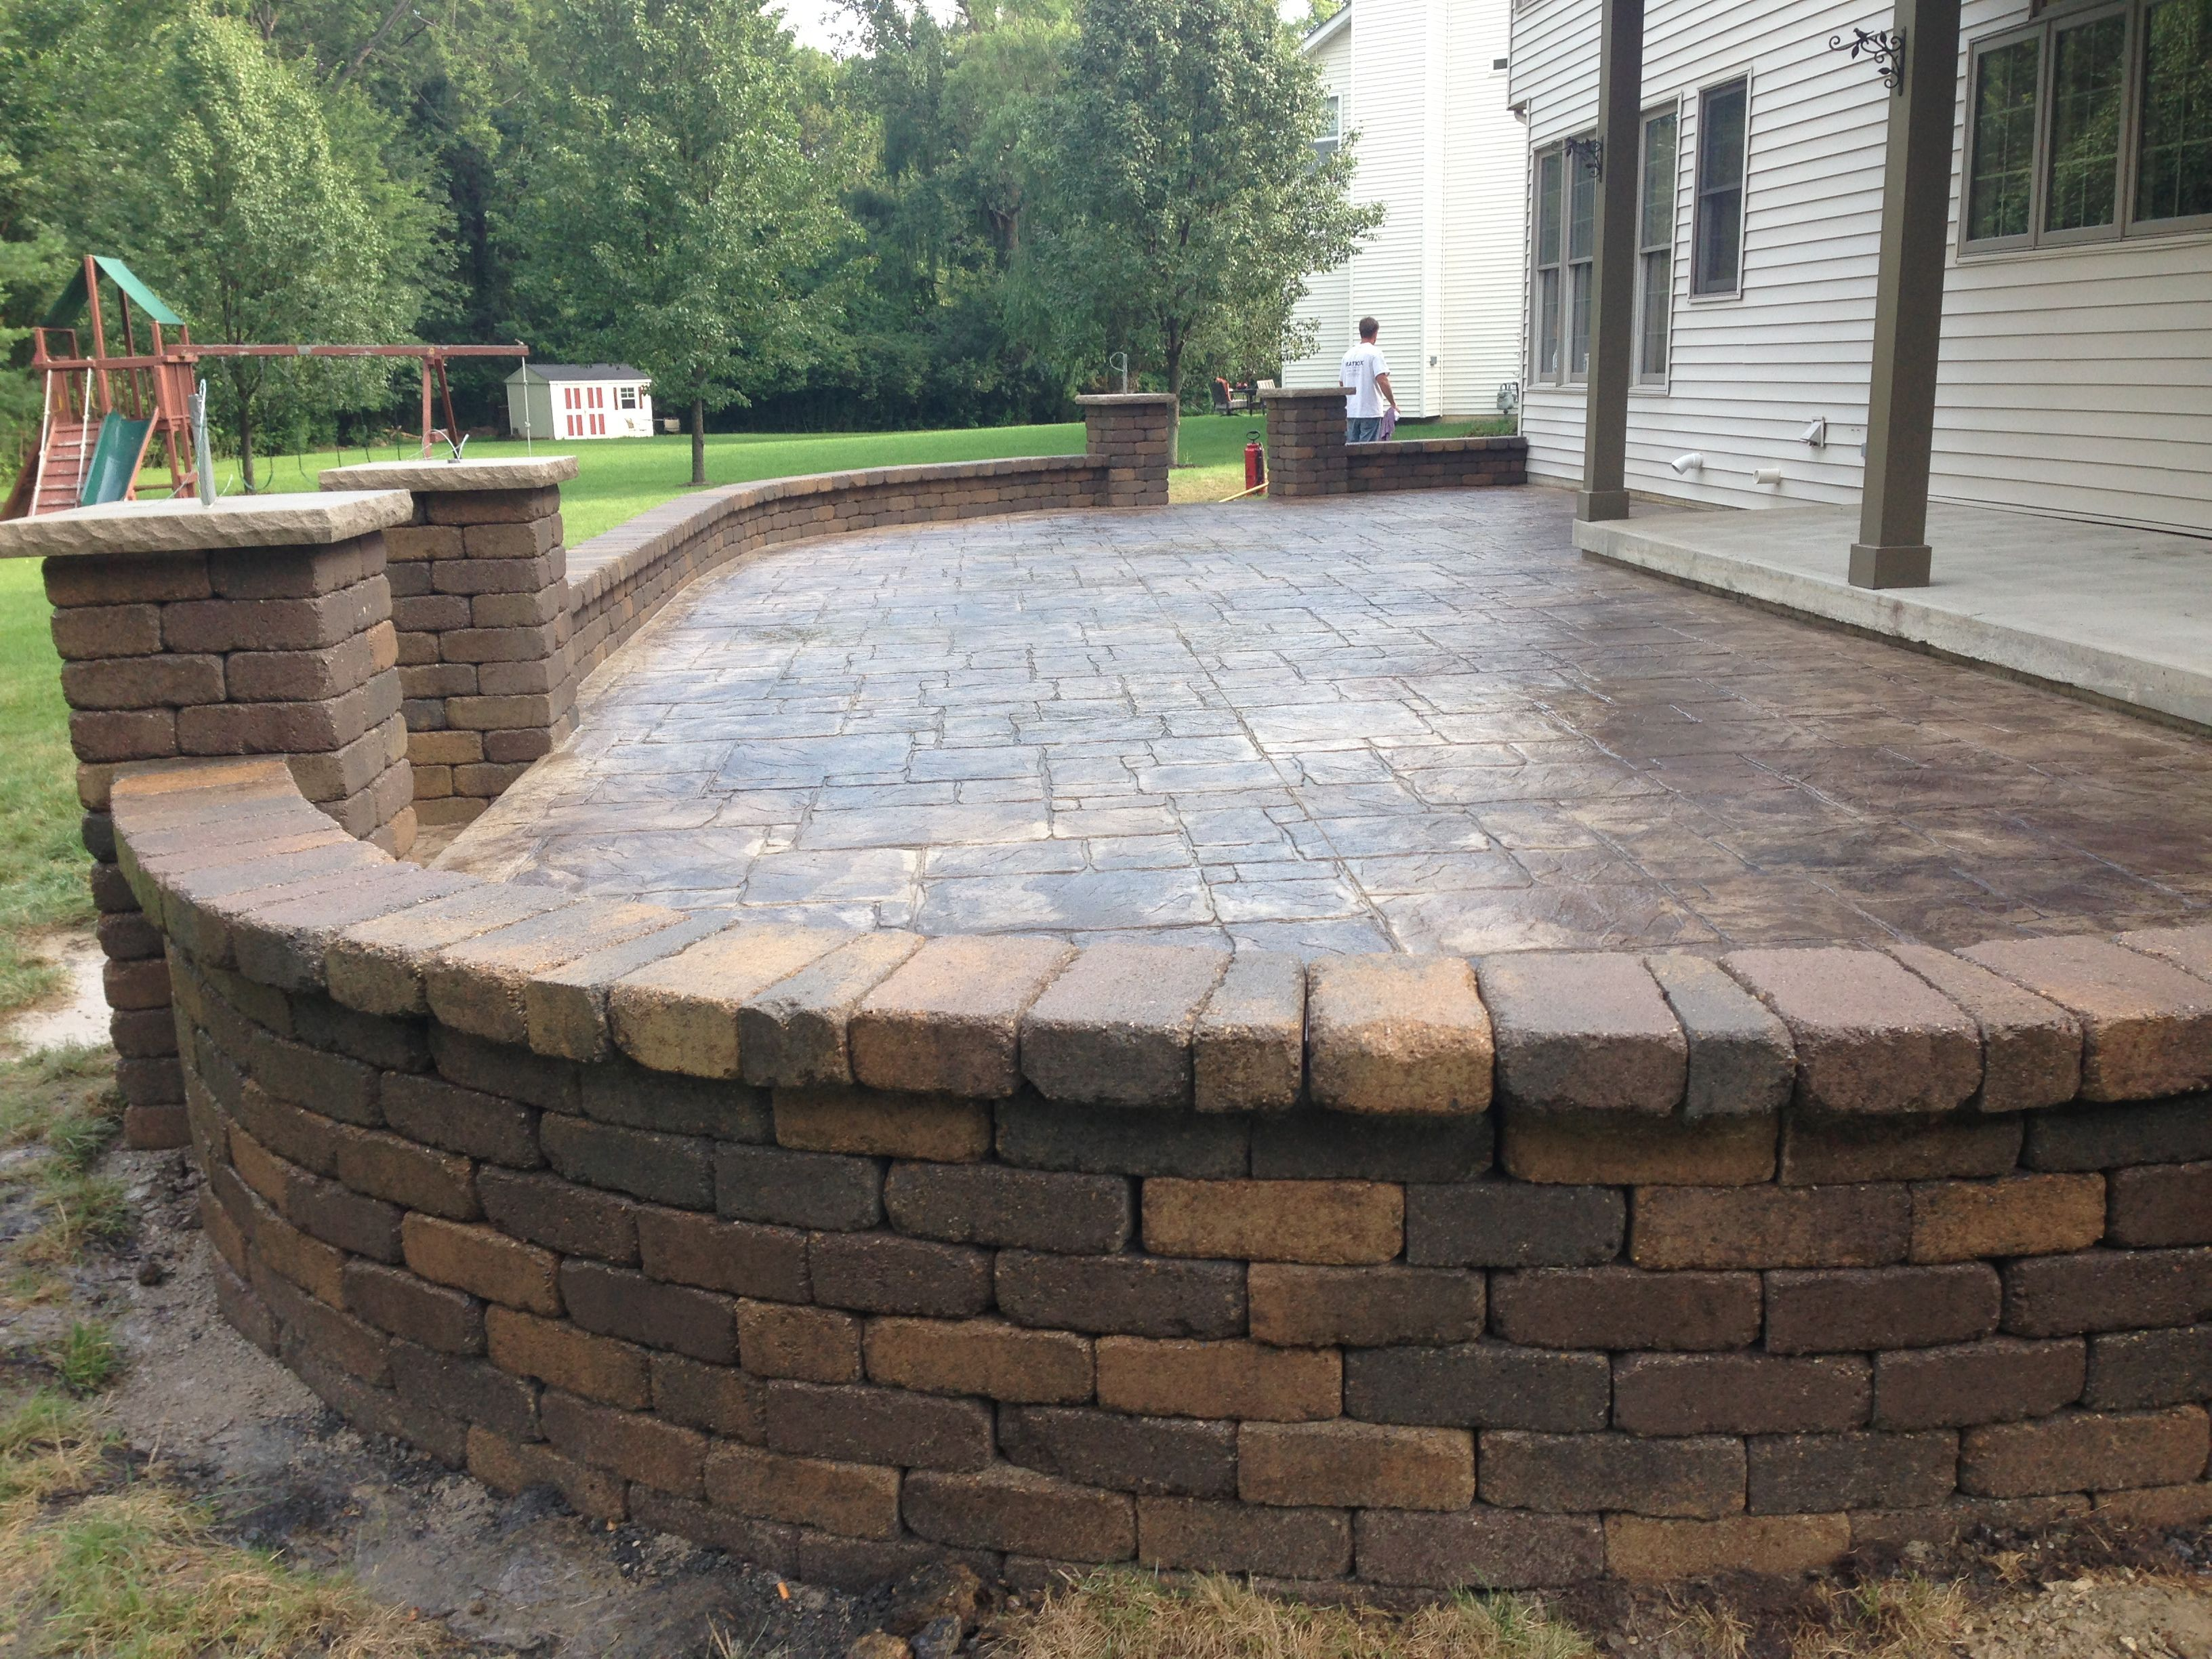 Decorative Stamped Concrete Patio With Retaining Wall And